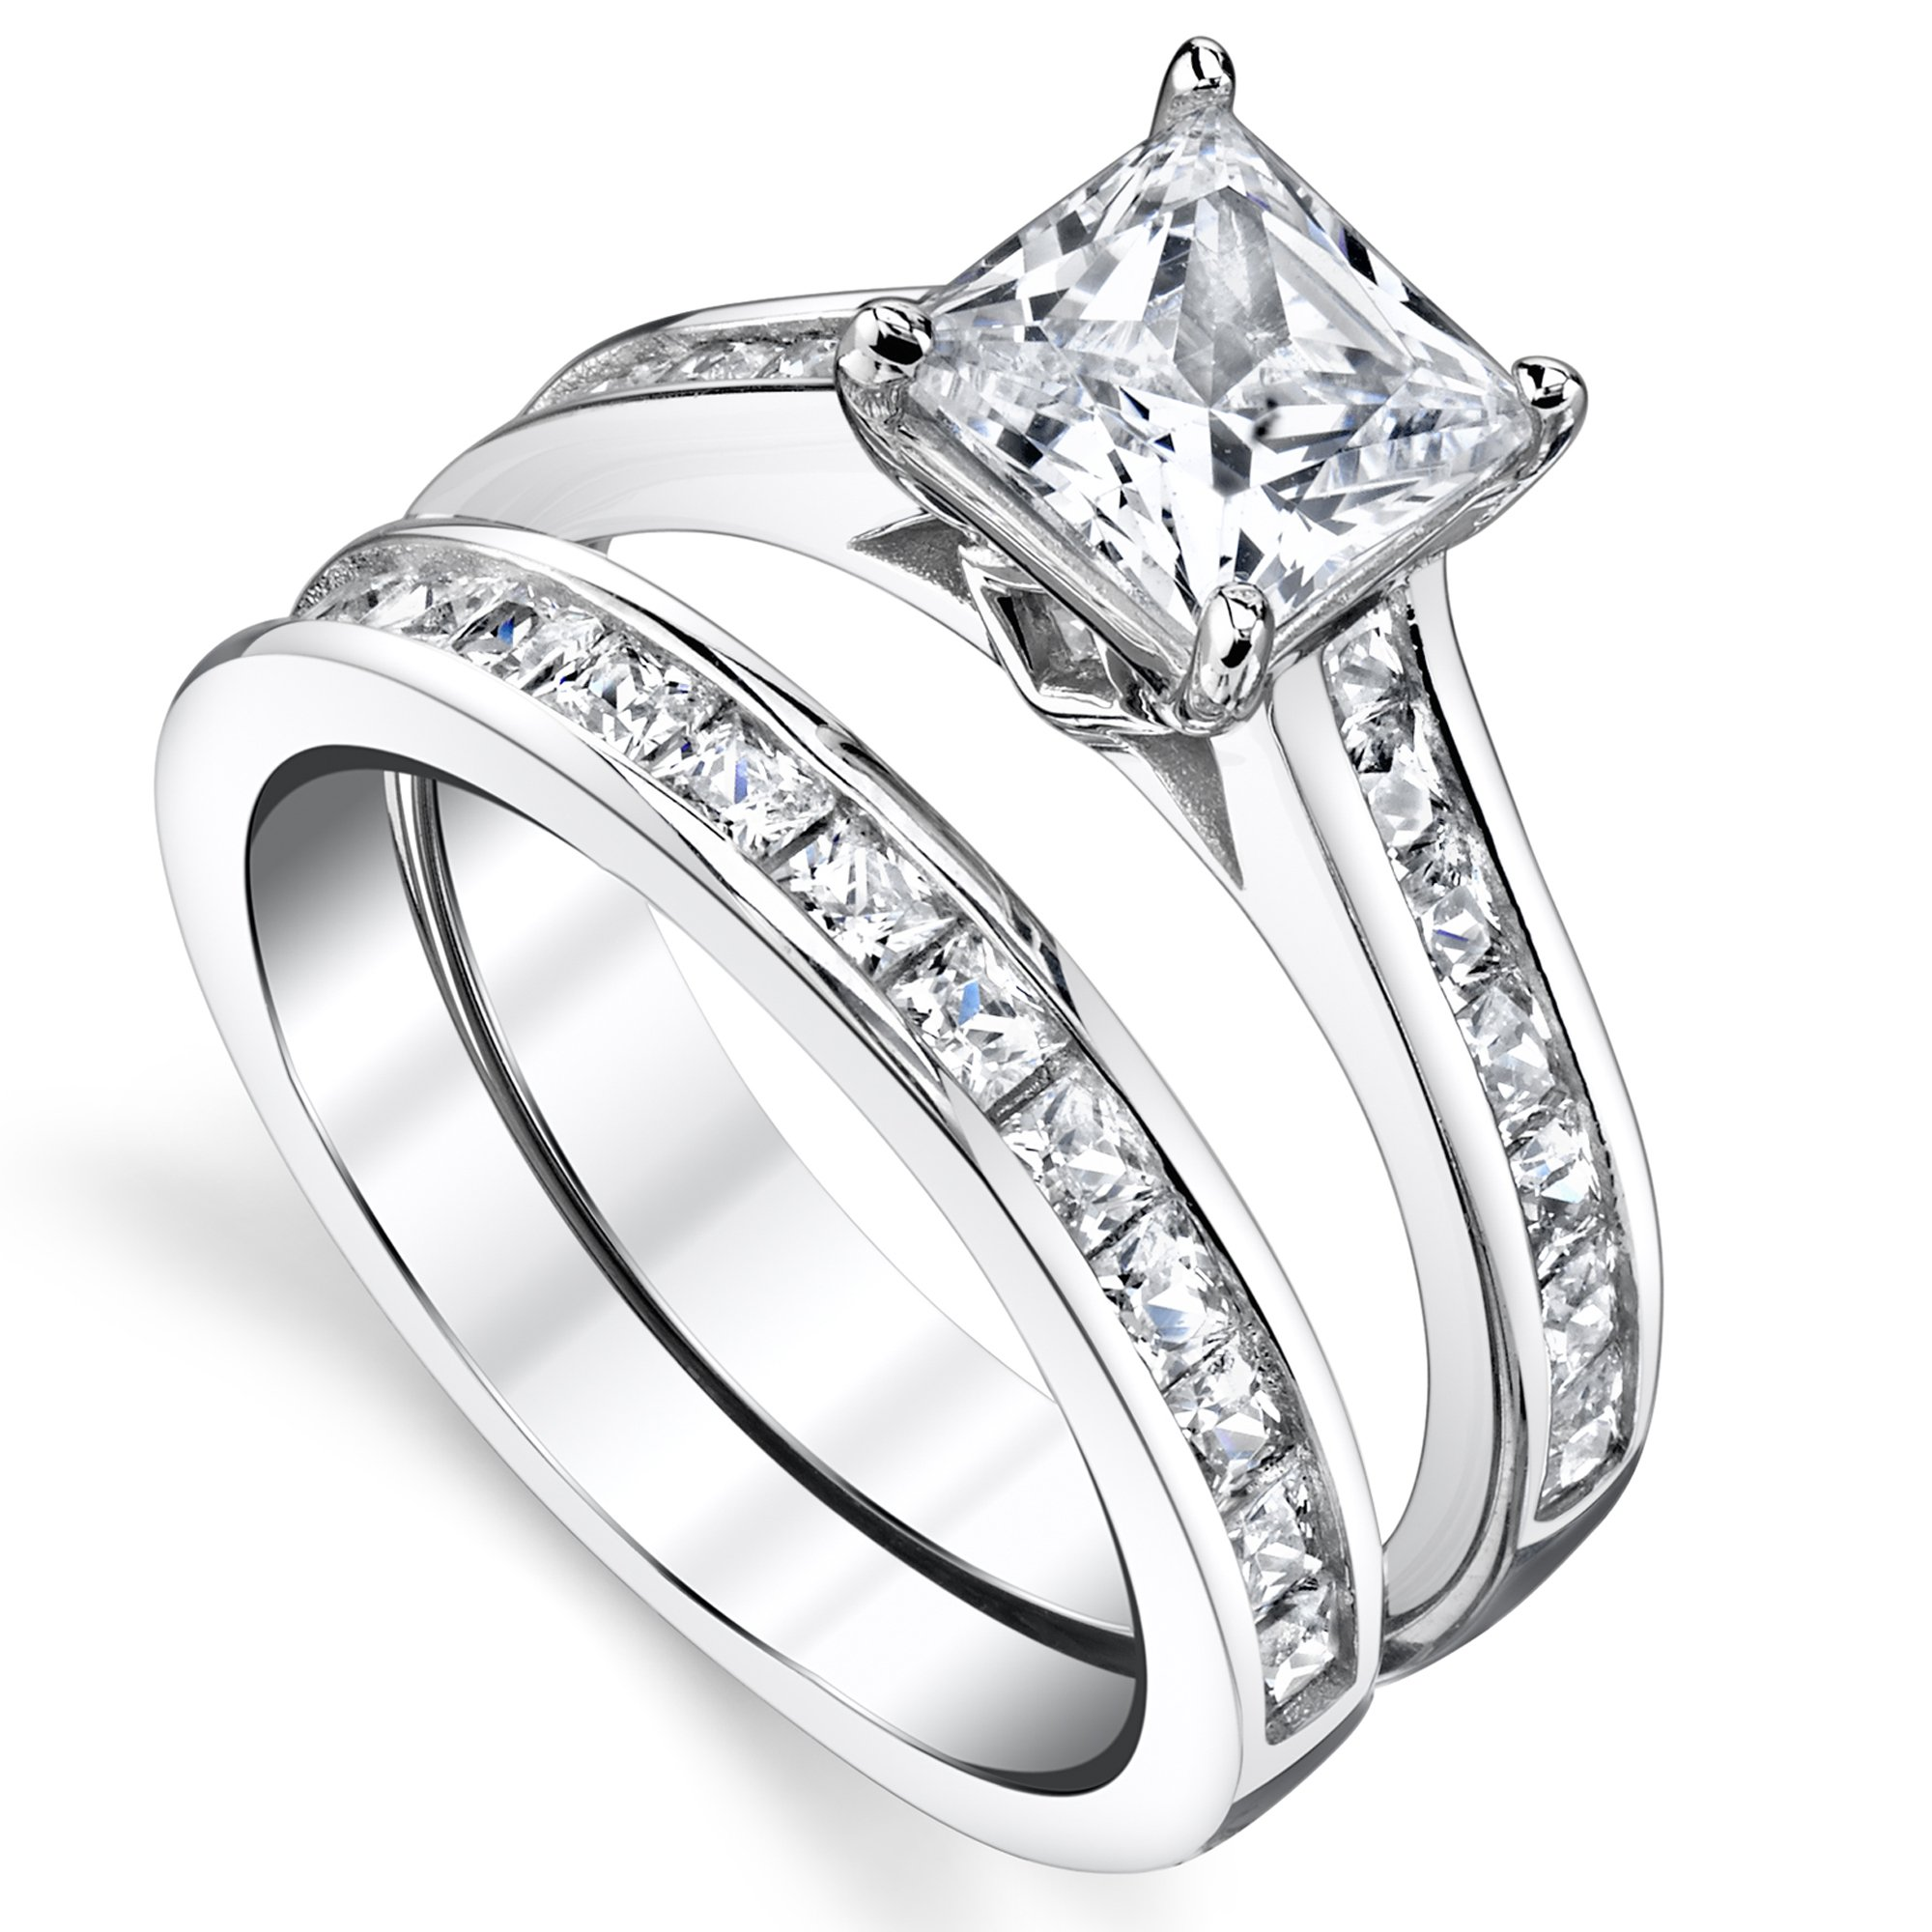 Sterling Silver Princess Cut Bridal Set Engagement Wedding Ring Bands With Cubic Zirconia Size 7 by Bonndorf (Image #1)